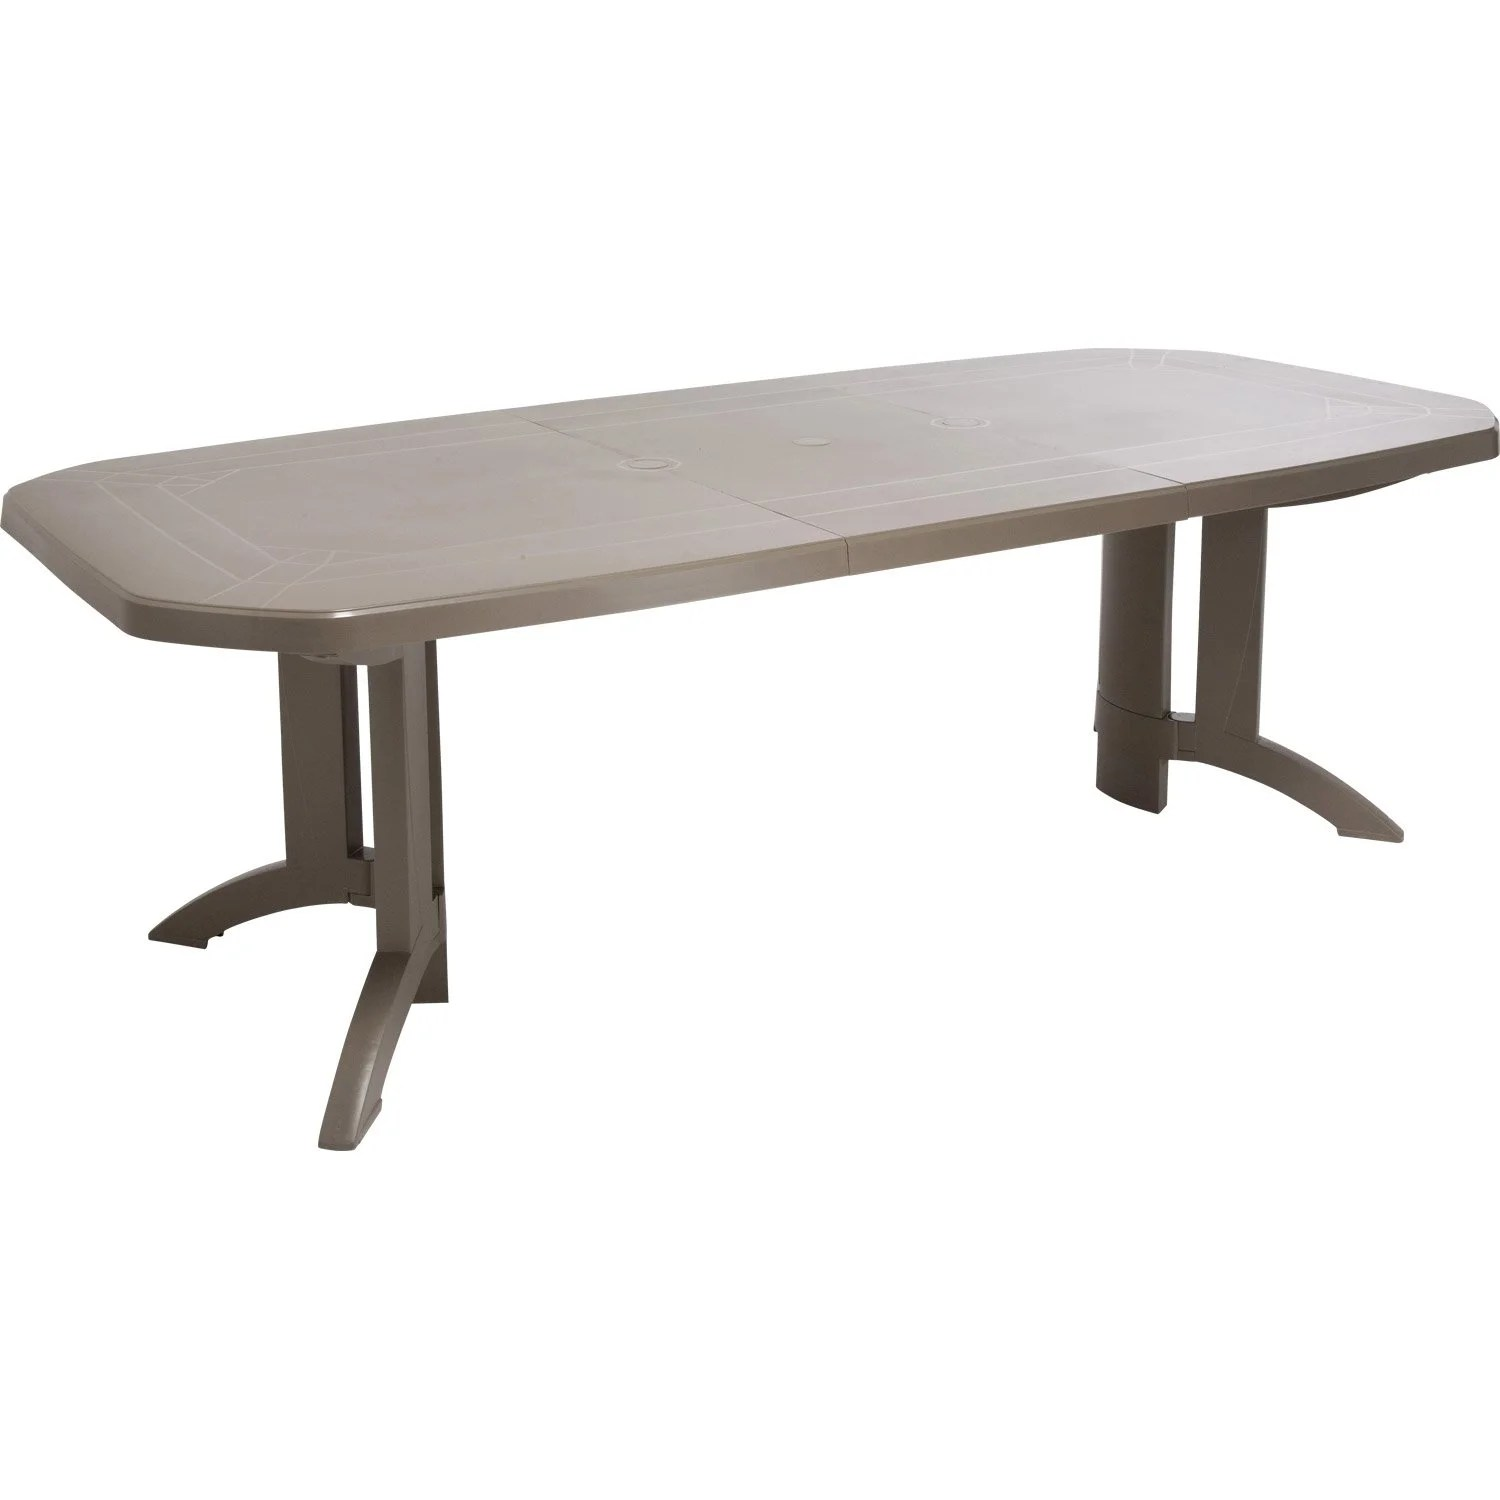 Table Jardin Verte Plastique Table De Jardin Grosfillex Véga Rectangulaire Taupe 10